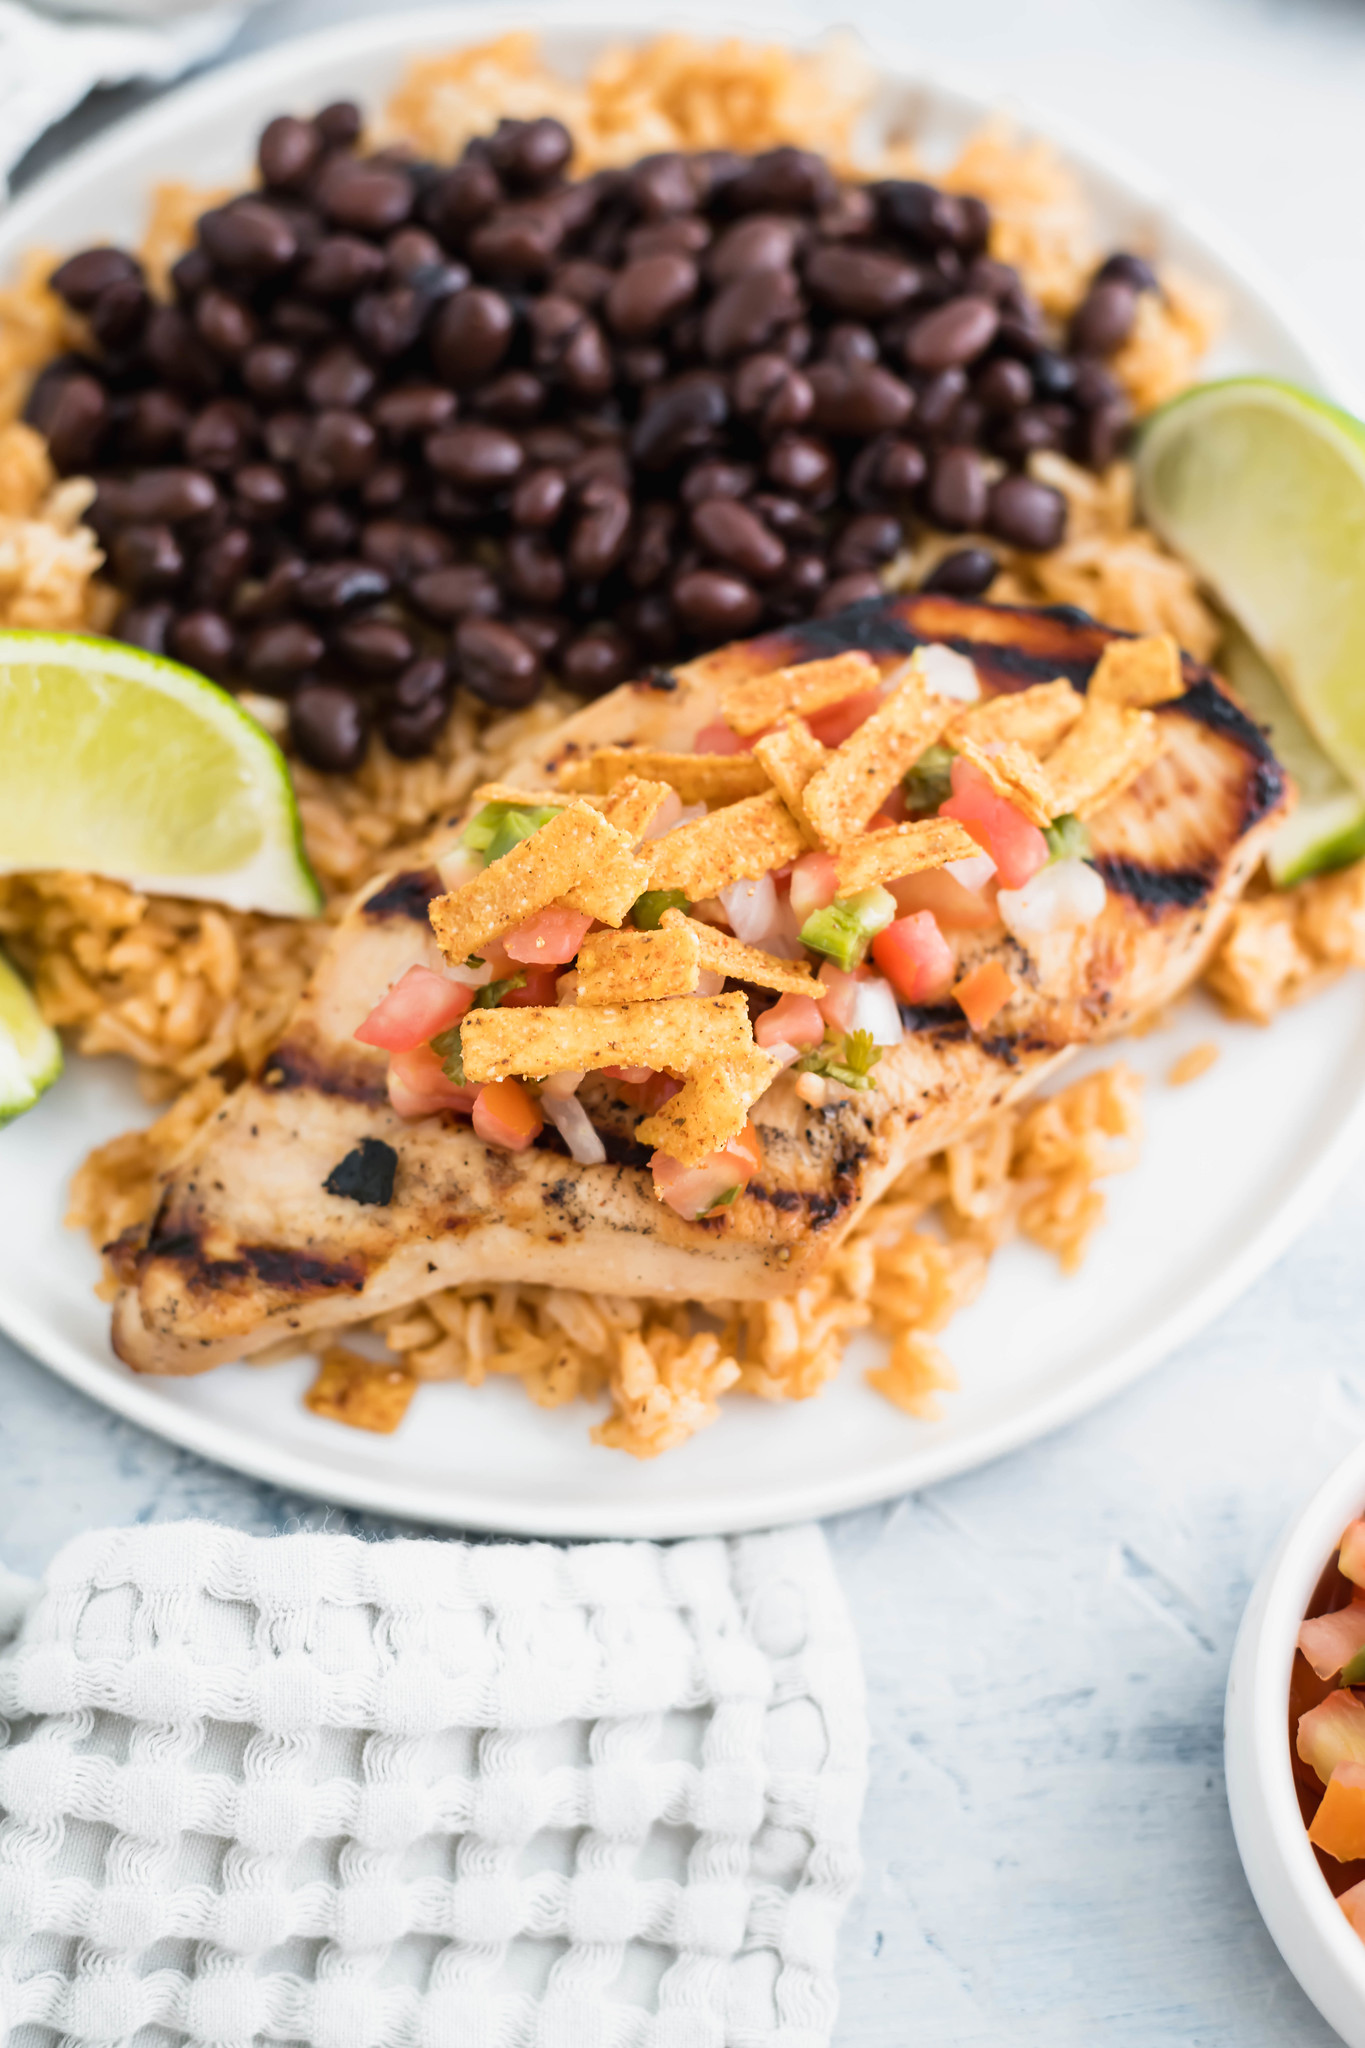 Skip eating out and make this copycat Chili's Margarita Grilled Chicken. It's a restaurant favorite that tastes just as delicious at home.